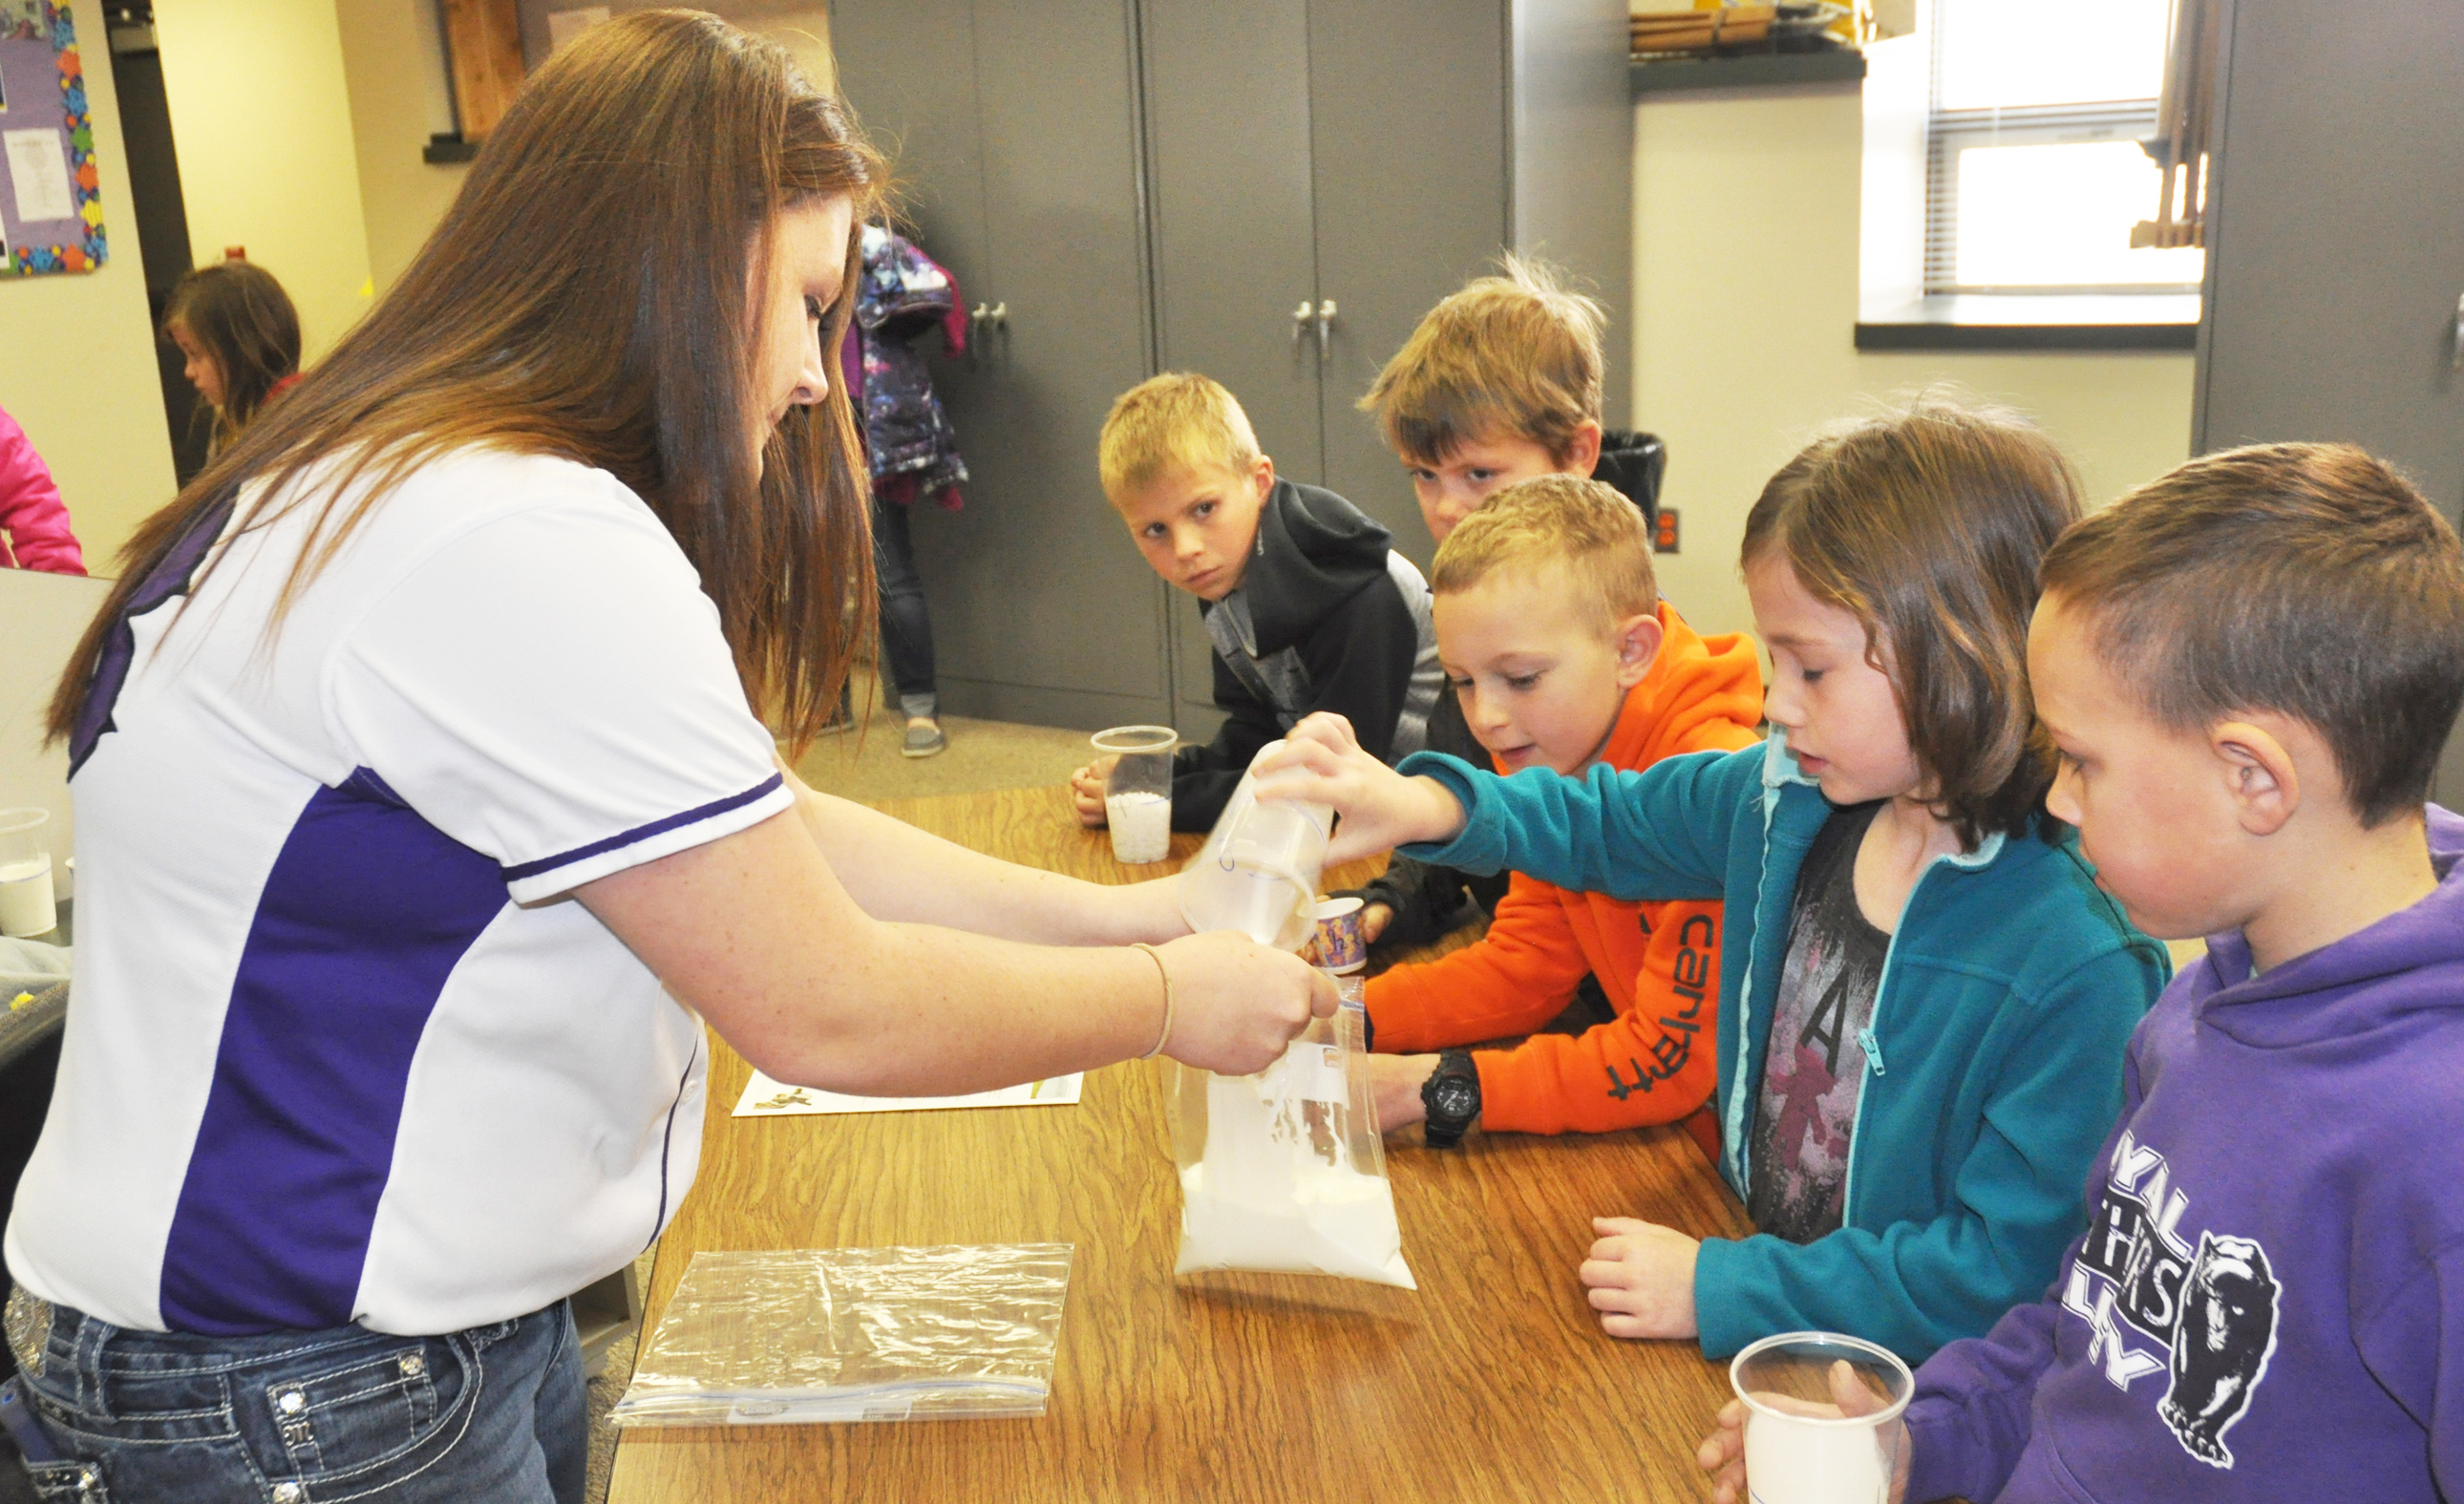 Royal Valley High School FFA member Eryn Daughtery (left) taught a group of second-grade students how to make ice cream by combining a few ingredients as part of the club's annual Elementary Agriculture Day last week. Elementary students pictured include (from front to back) Carter Russell, Isabella Wheeler, Wyatt Shields, John Young and Nolan Bausch. (Photo by Ali Holcomb)